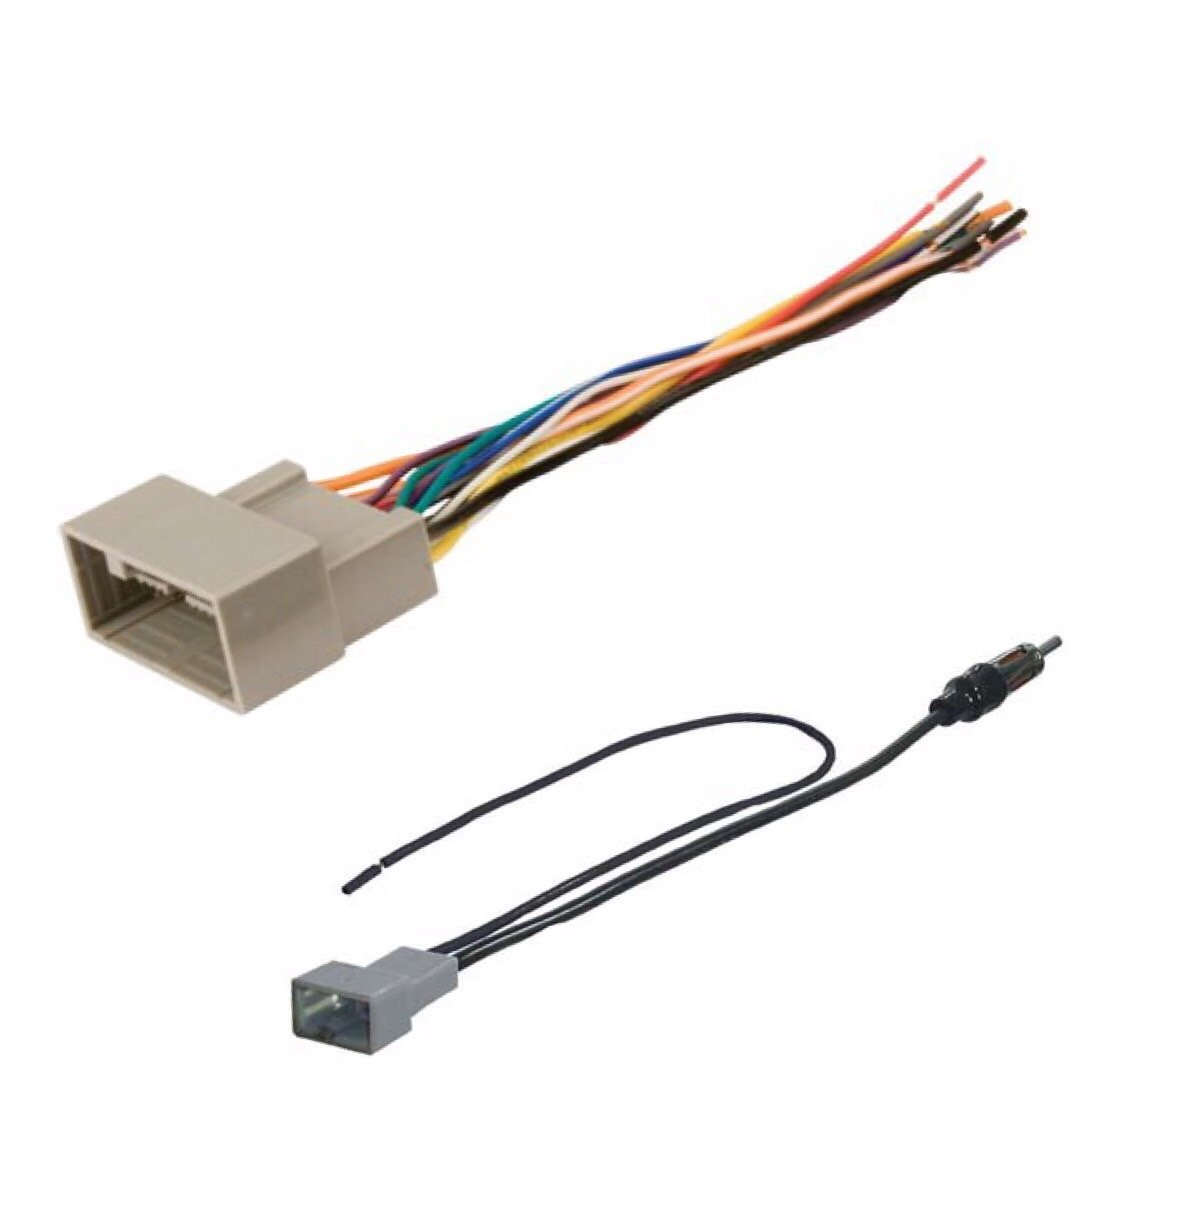 ASC Audio Car Stereo Radio Wire Harness and Antenna Adapter to Install an Aftermarket Radio for some Acura and Honda Vehicles - Compatible Vehicles Listed Below